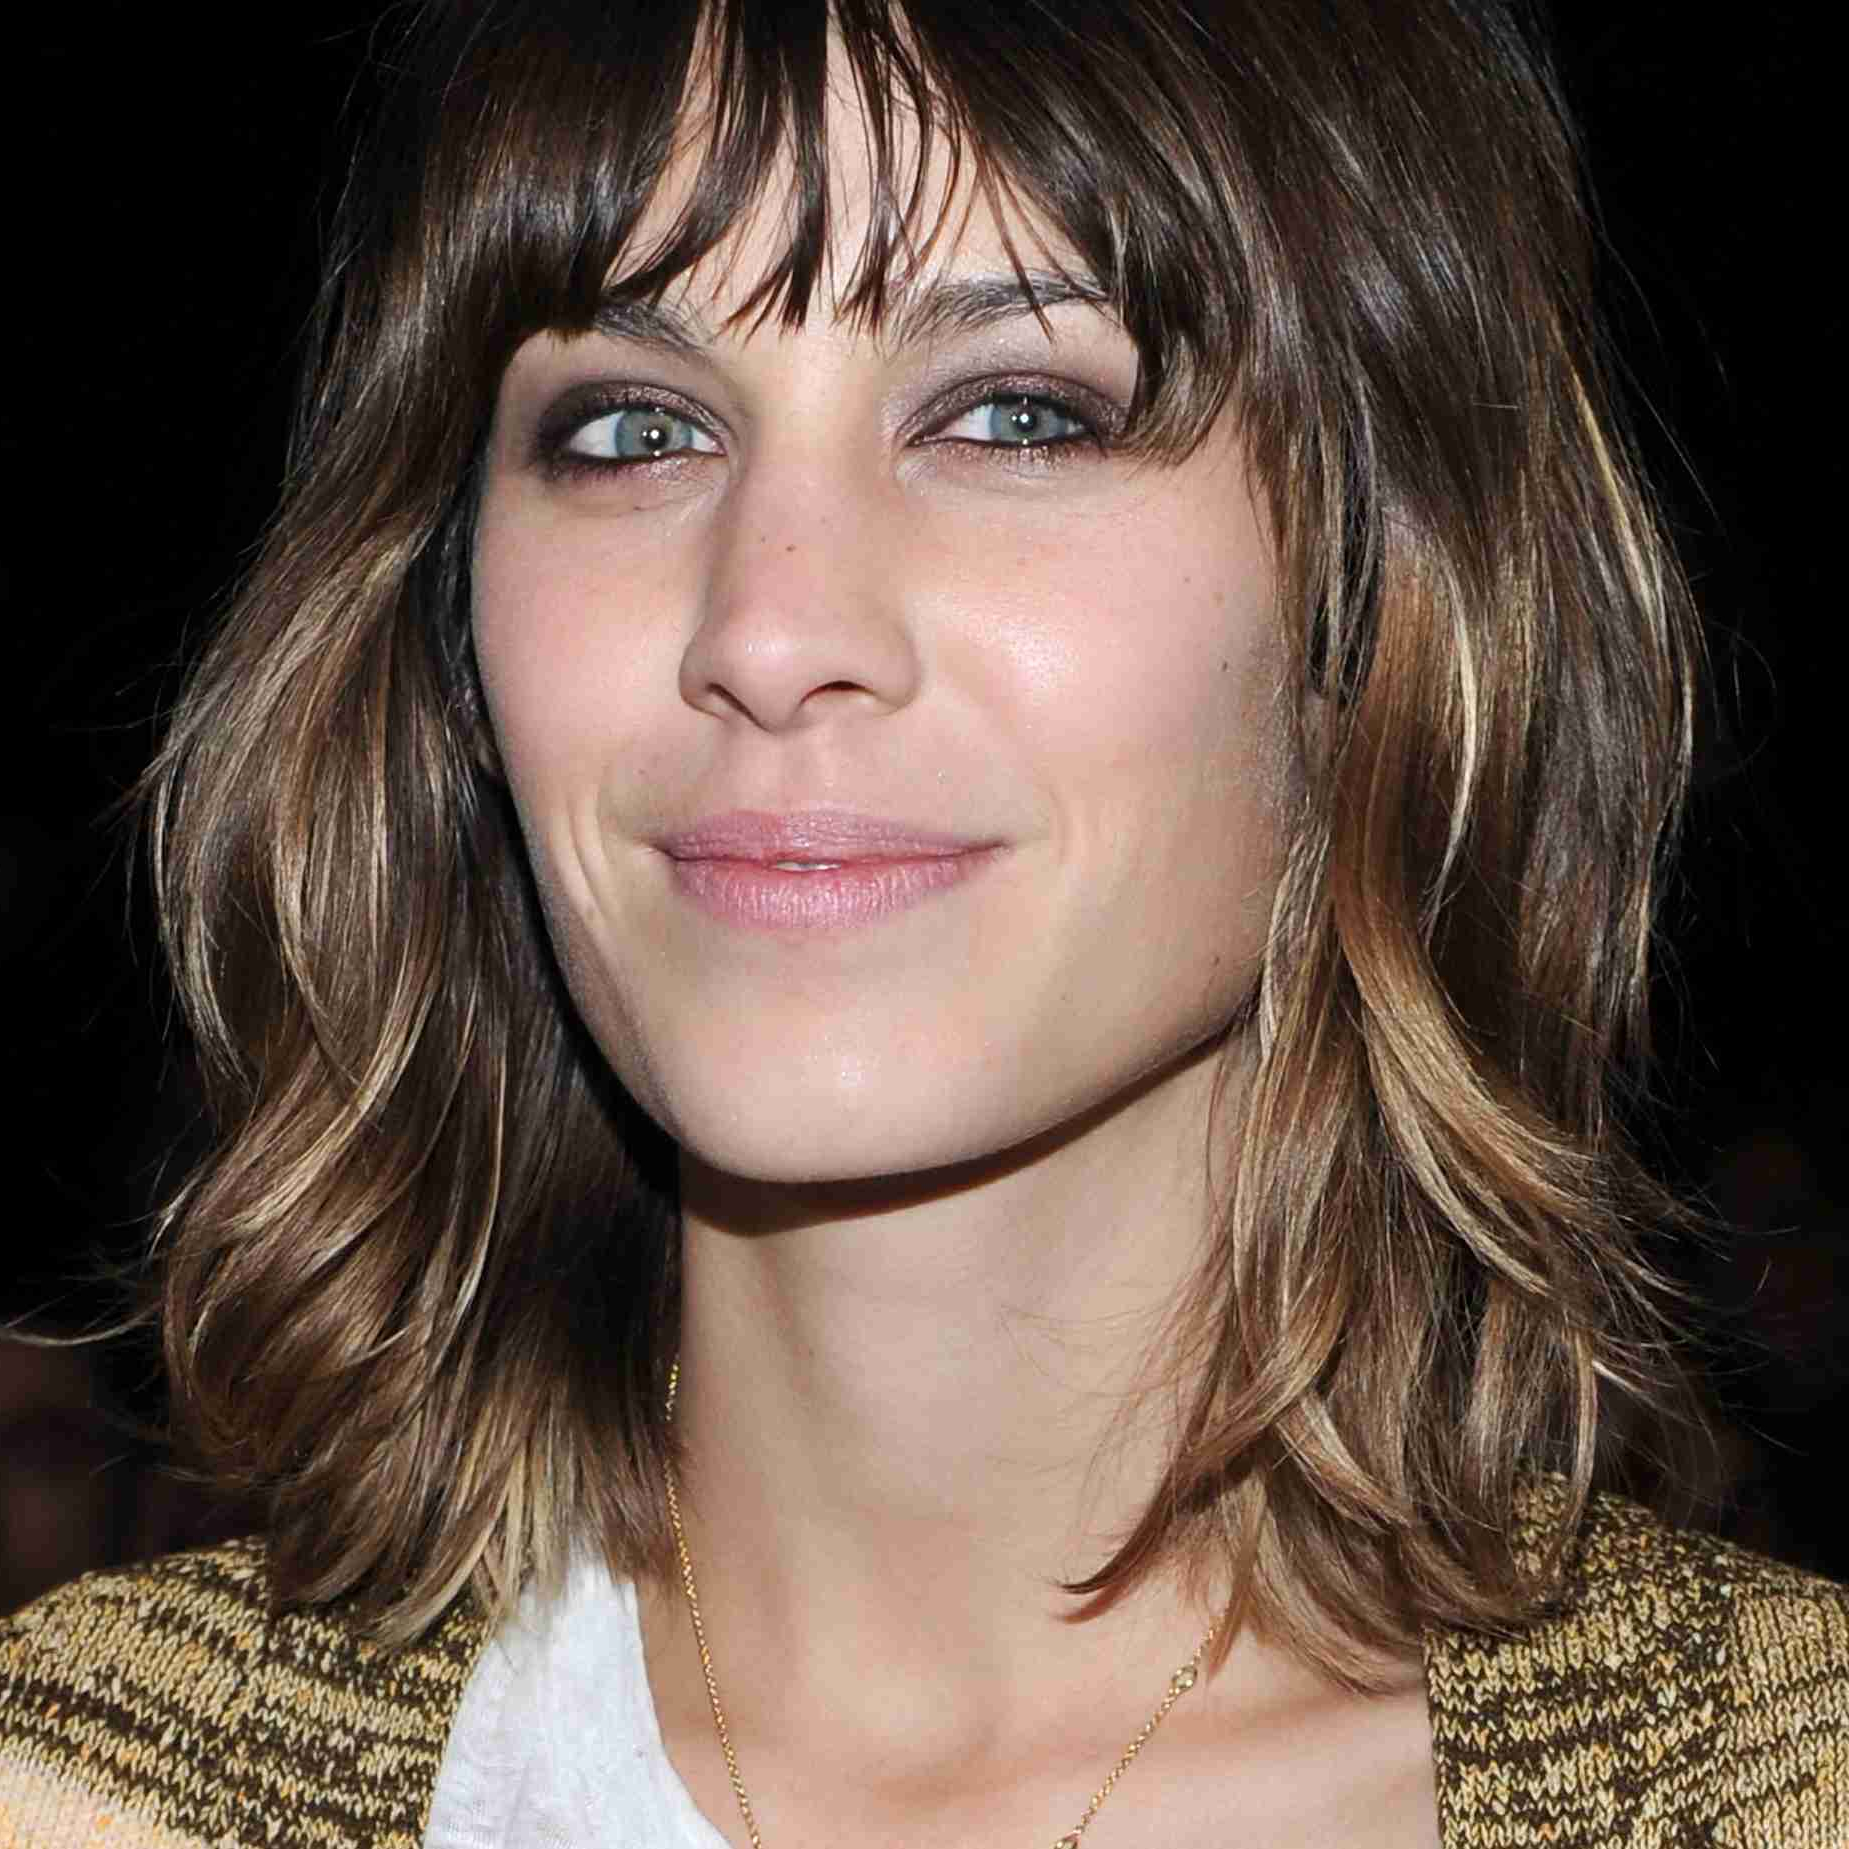 Can't Miss Shag Haircuts, From Short To Long Within Widely Used Long Brown Shag Hairstyles With Blonde Highlights (View 8 of 20)